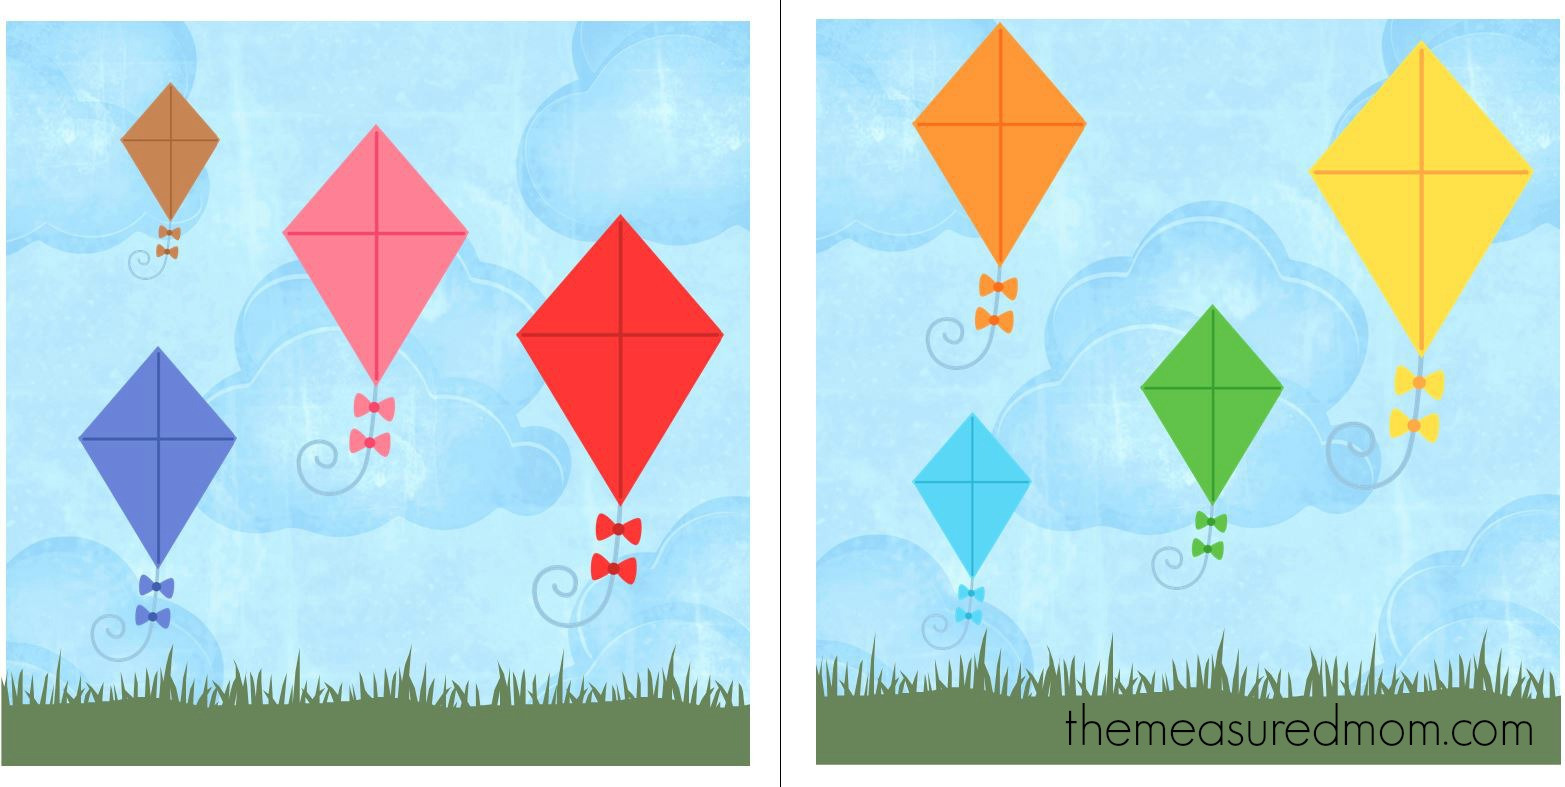 Free File Folder Game For Preschoolers: Kites! - The Measured Mom - Free Printable Math File Folder Games For Preschoolers